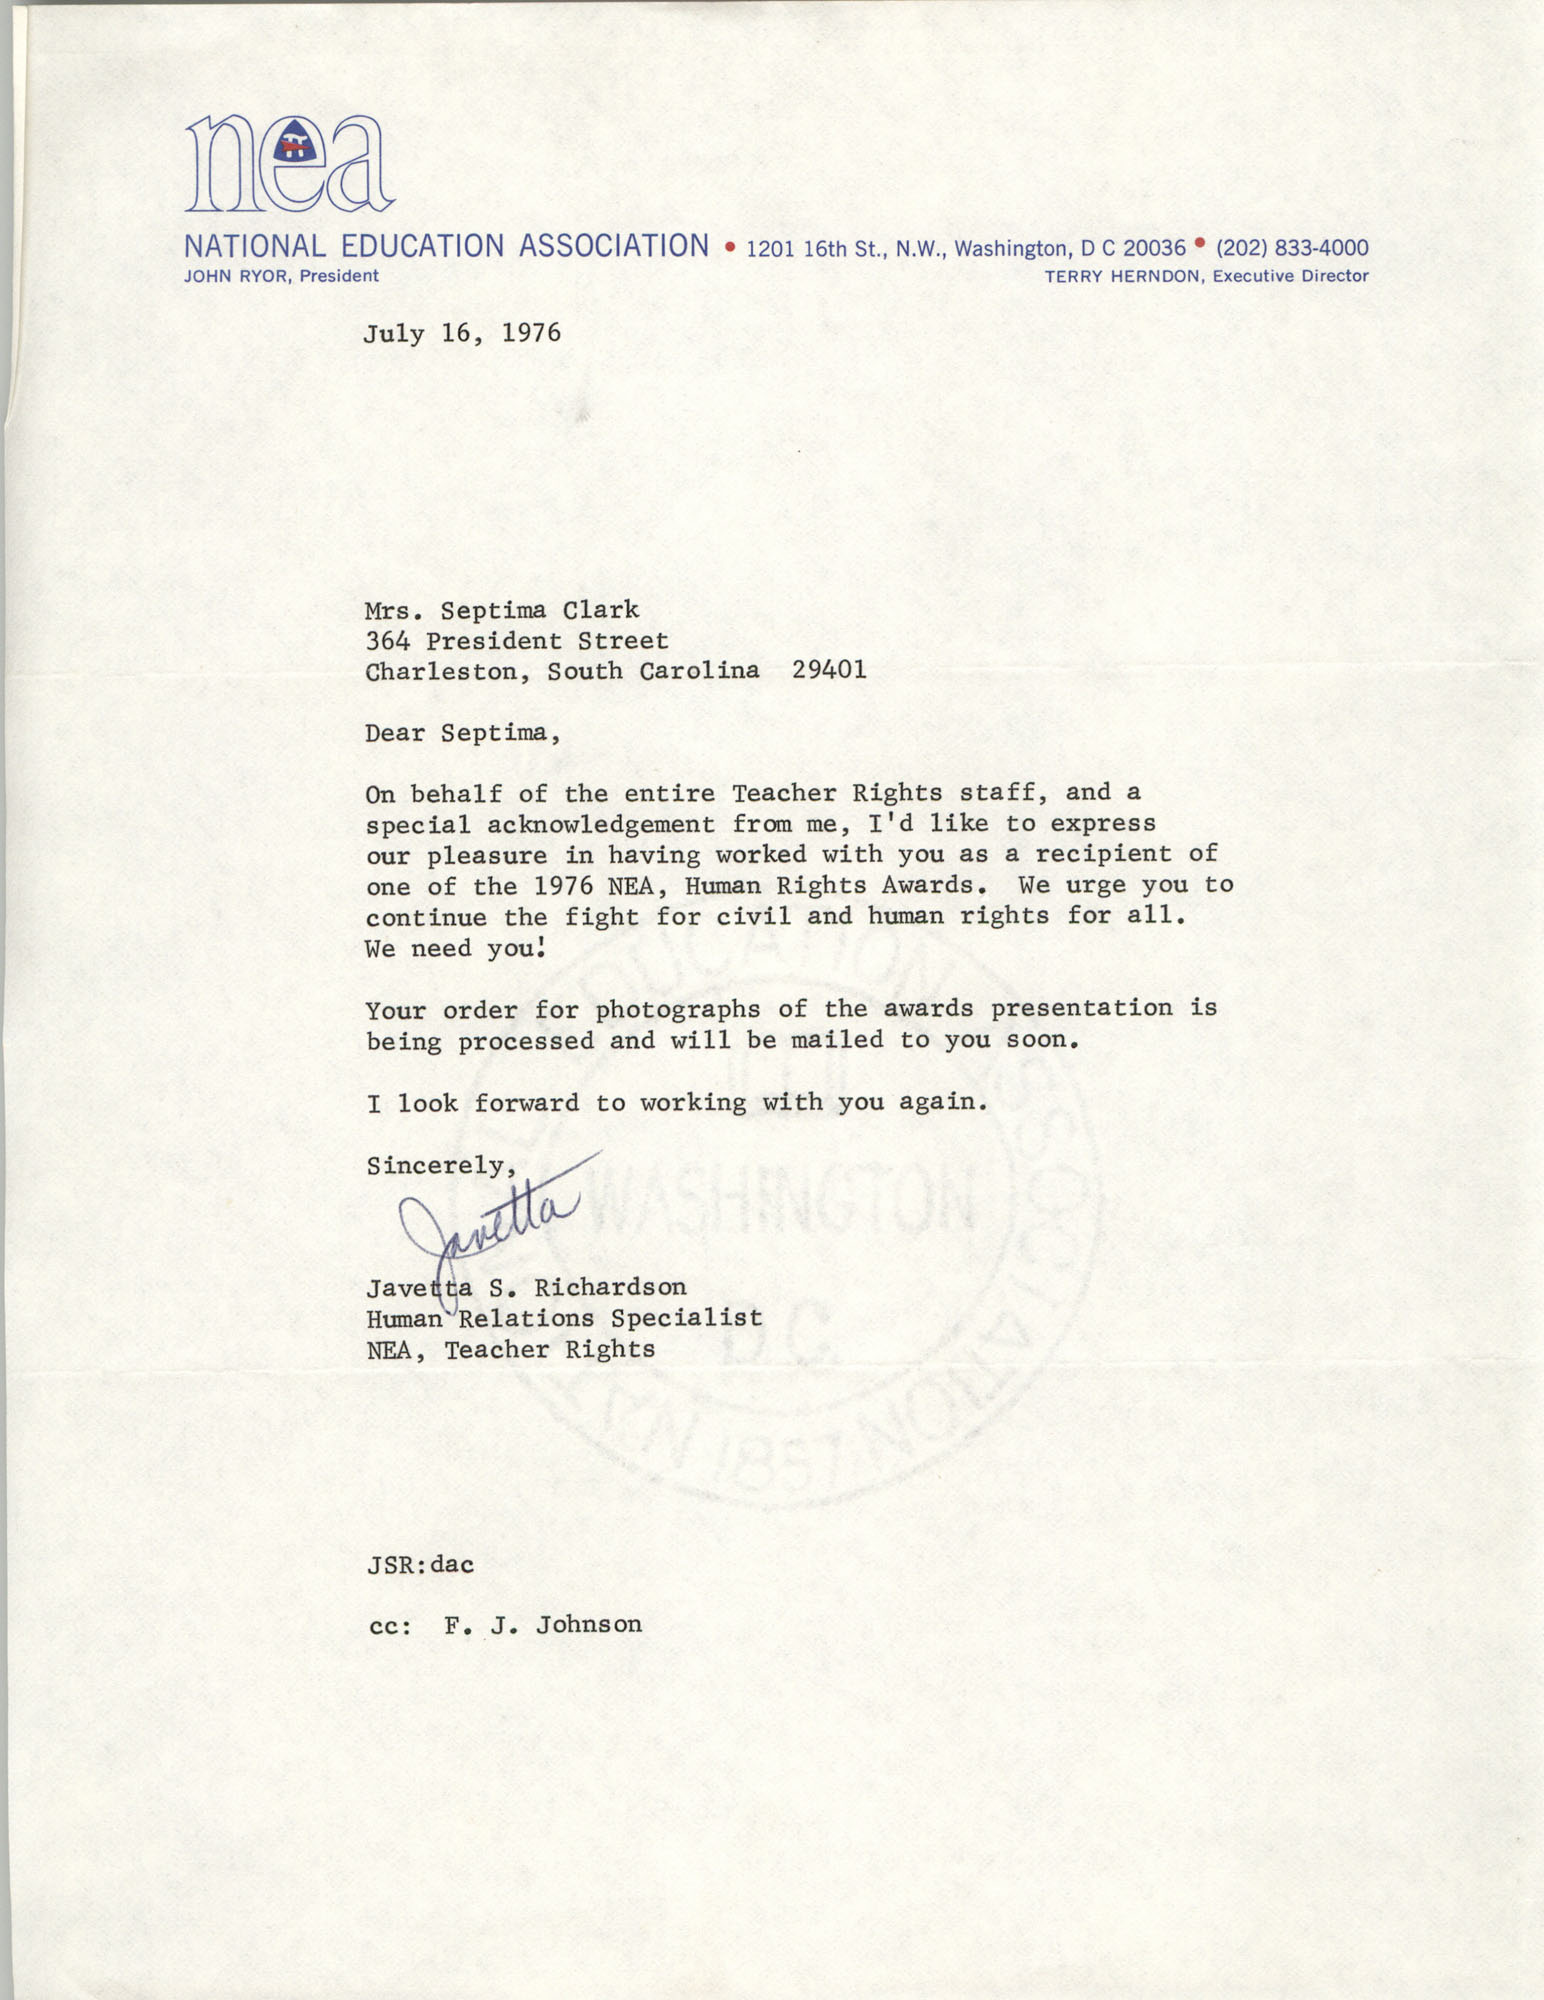 Letter from National Education Association to Septima P. Clark, H. Councill Trenholm Memorial Award, July 16, 1976